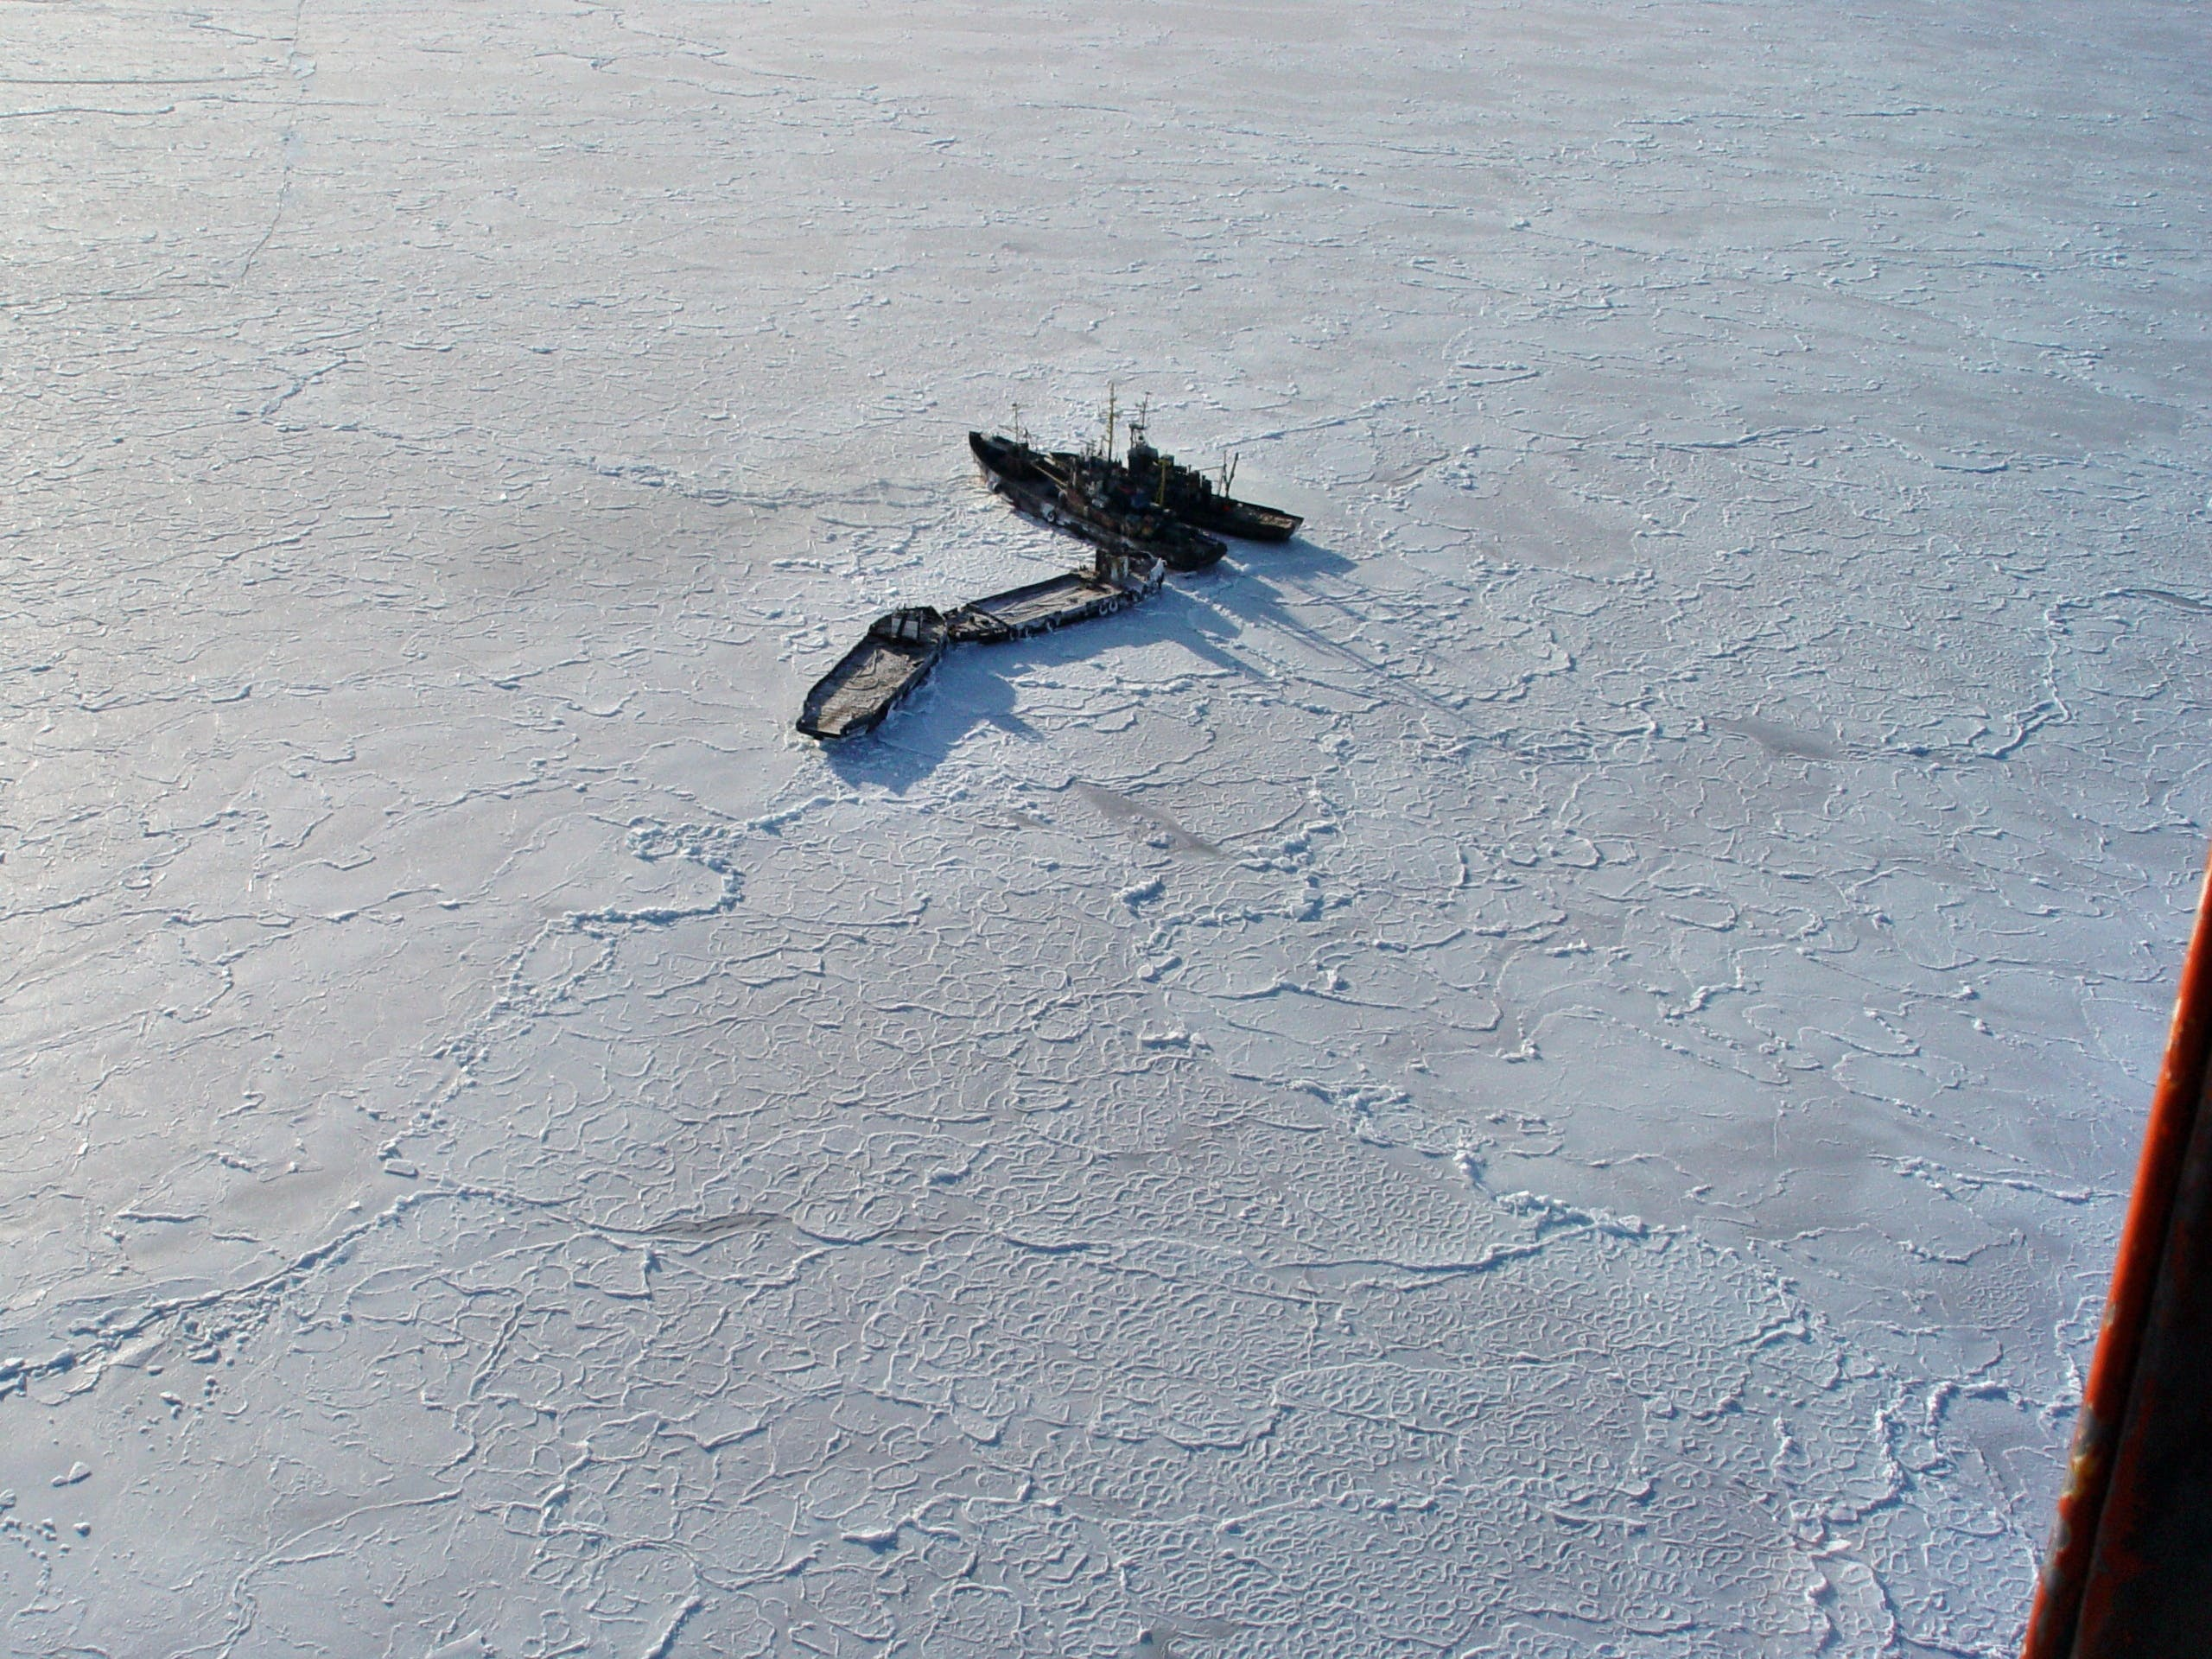 Free stock photo of Jammed in the ice